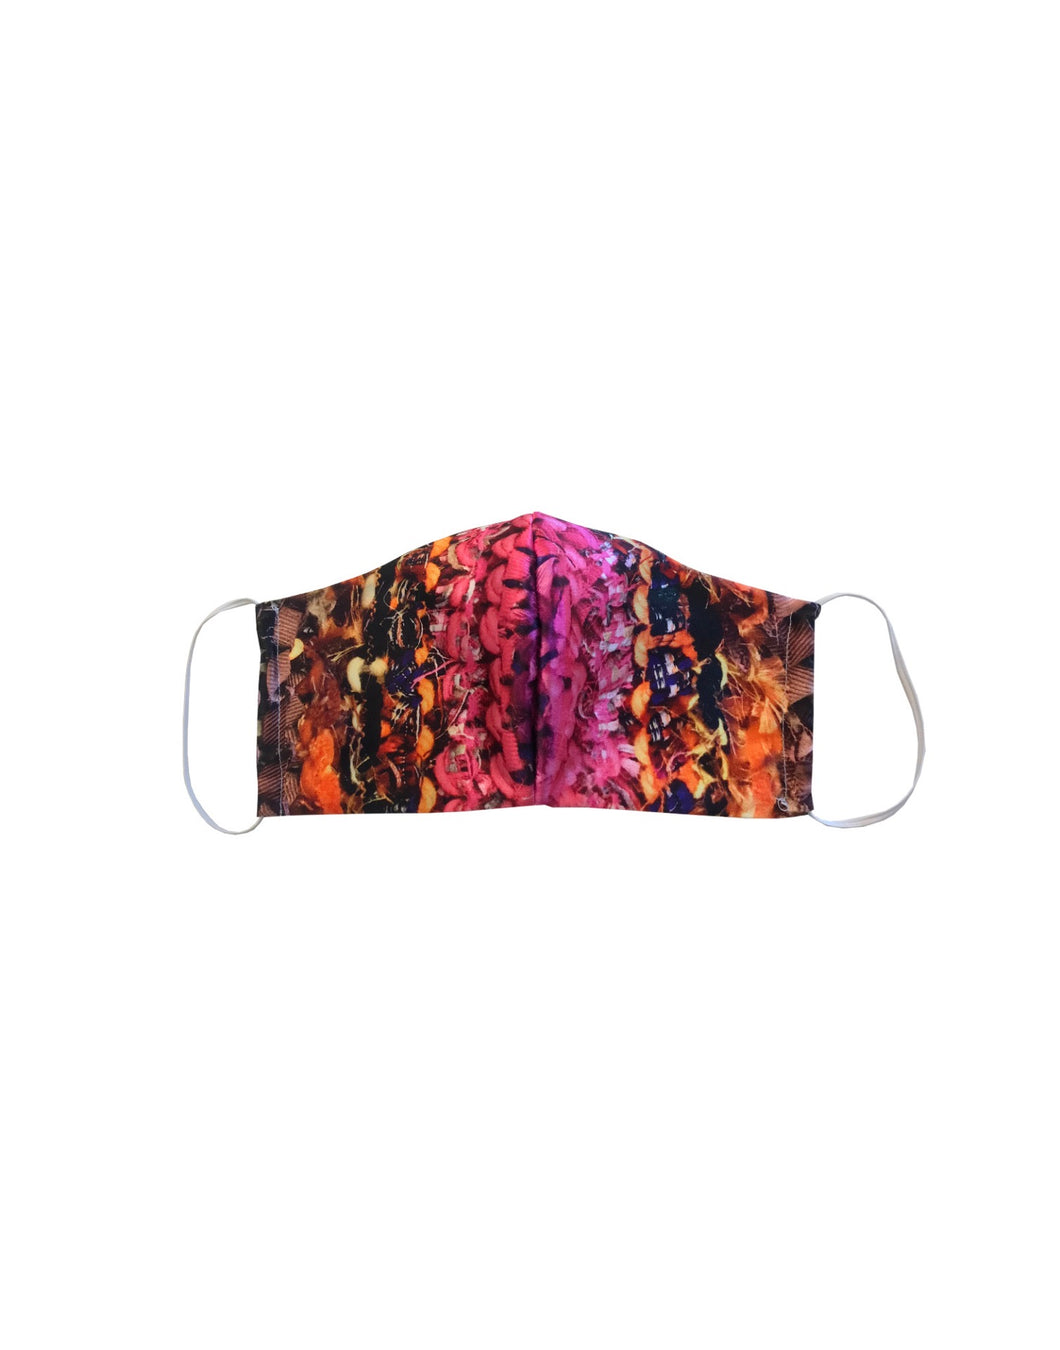 Fashion Mask rainbow